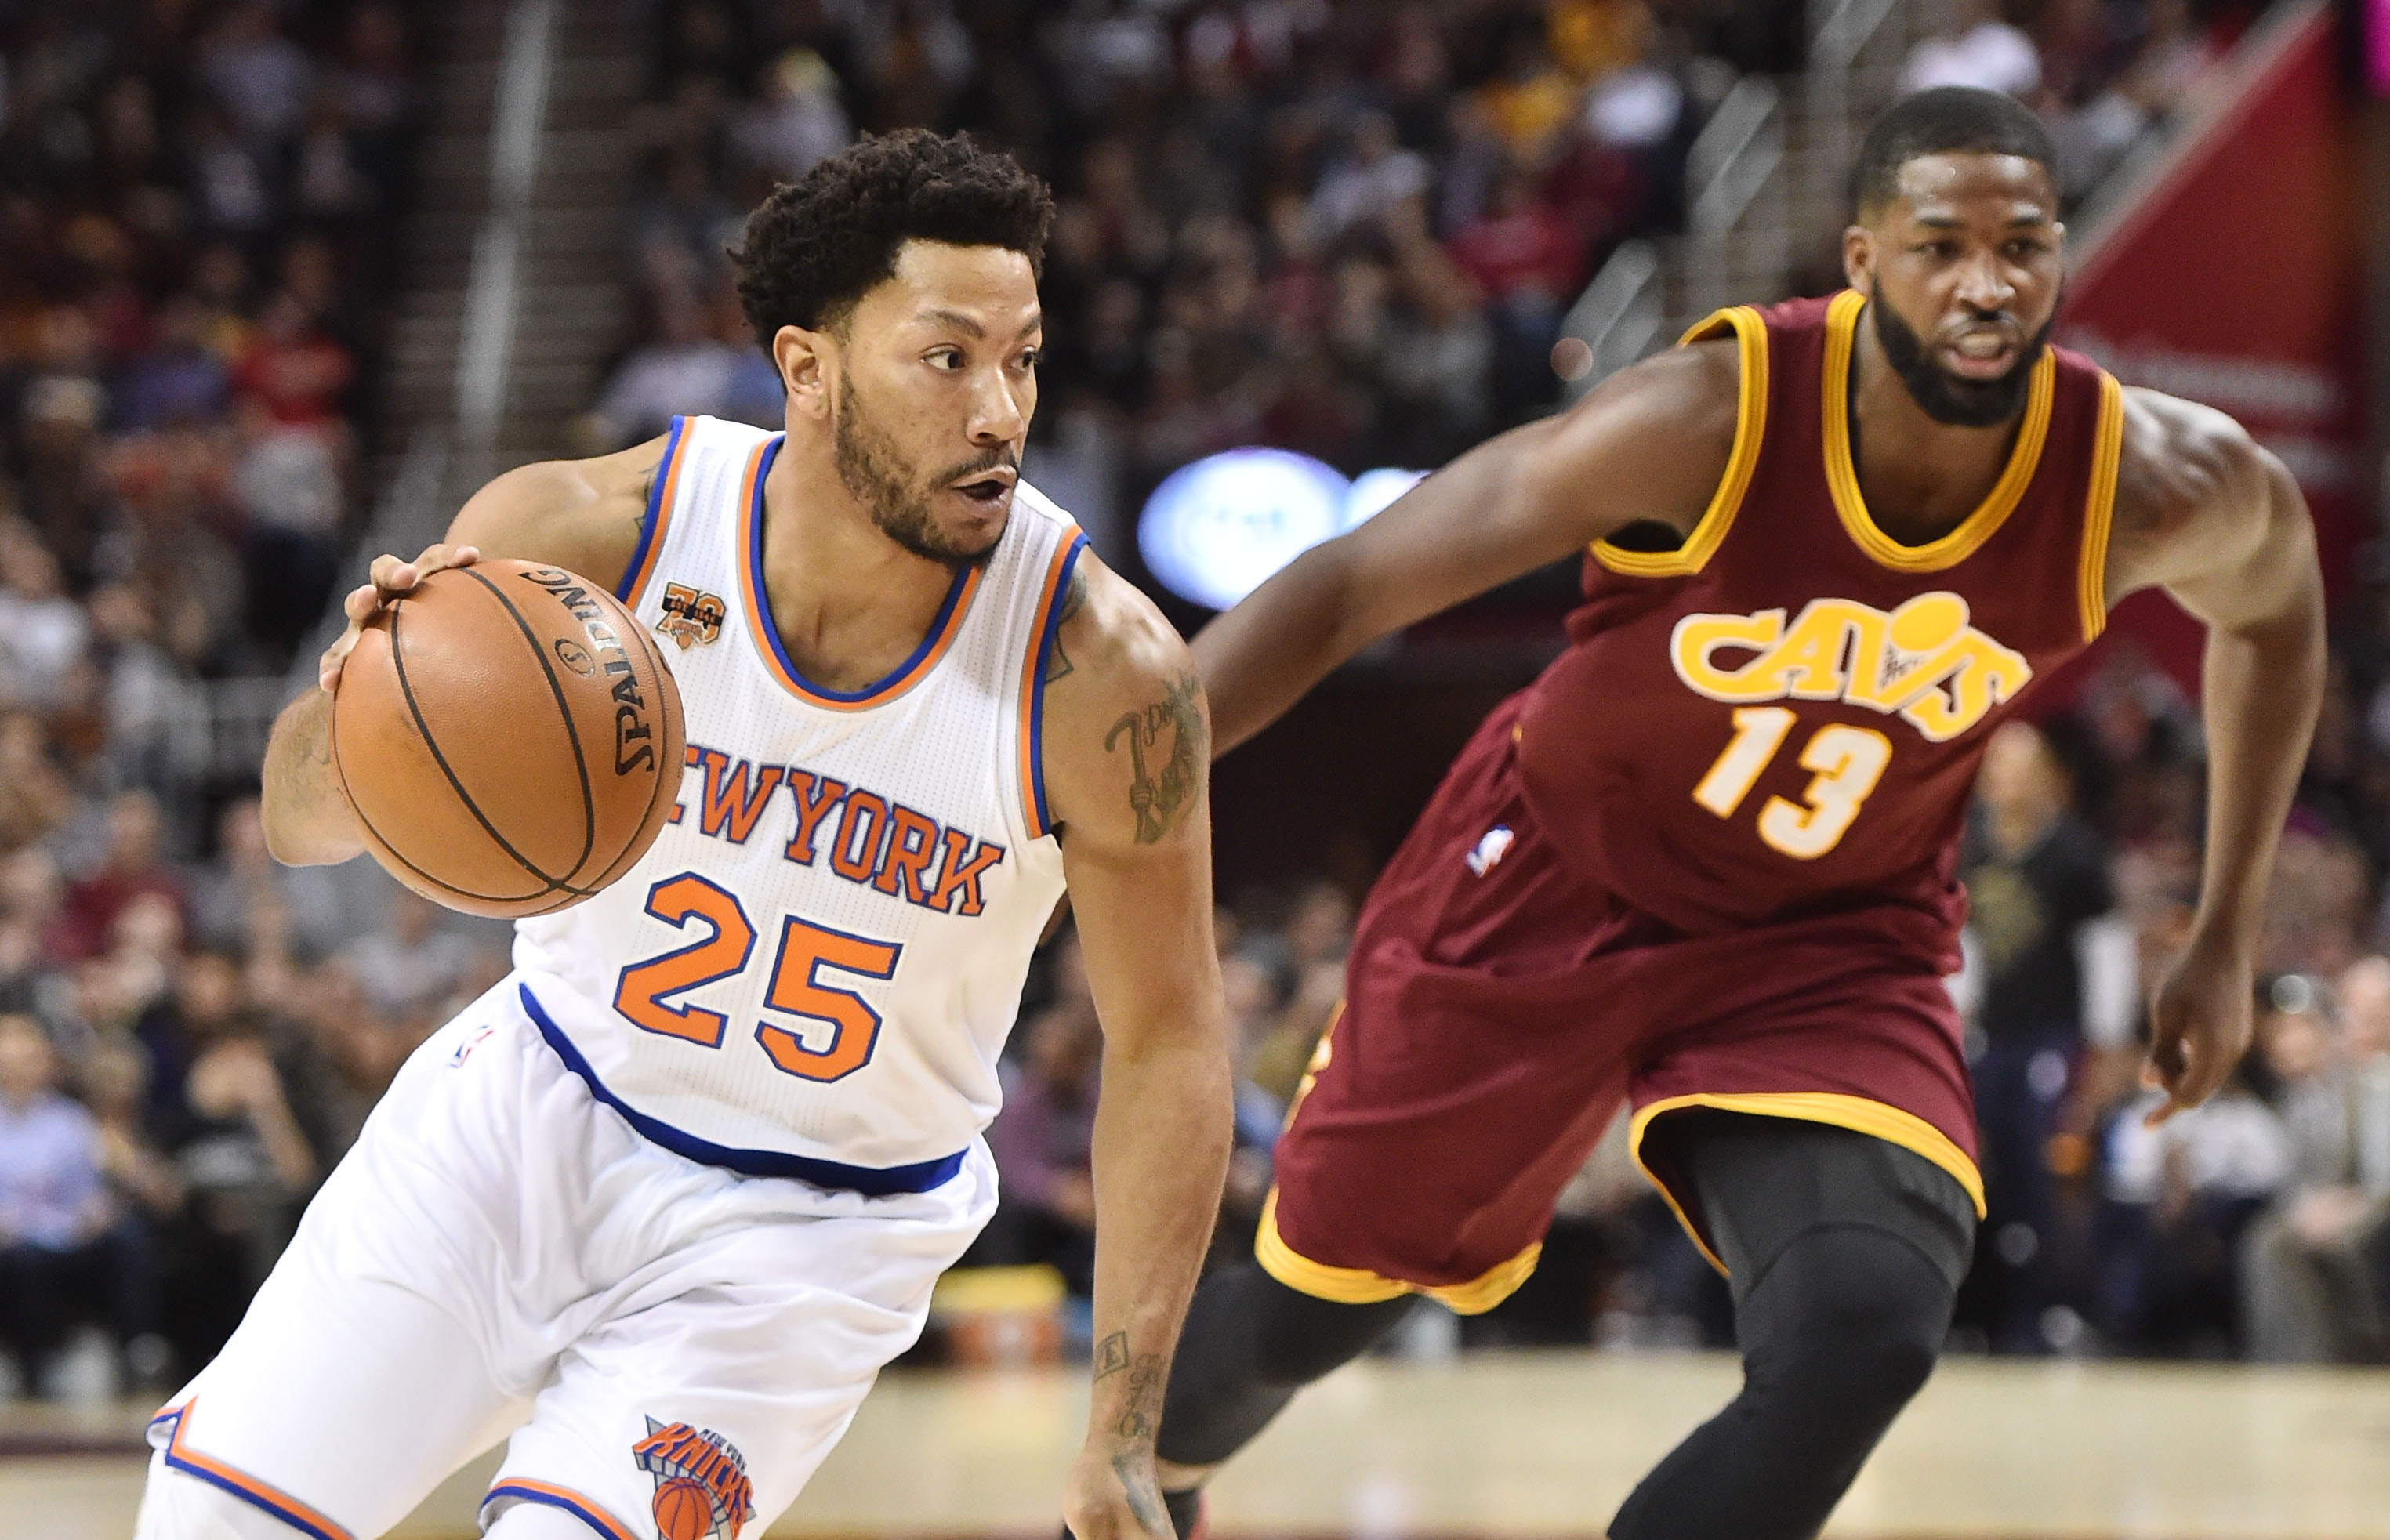 9896147-nba-new-york-knicks-at-cleveland-cavaliers